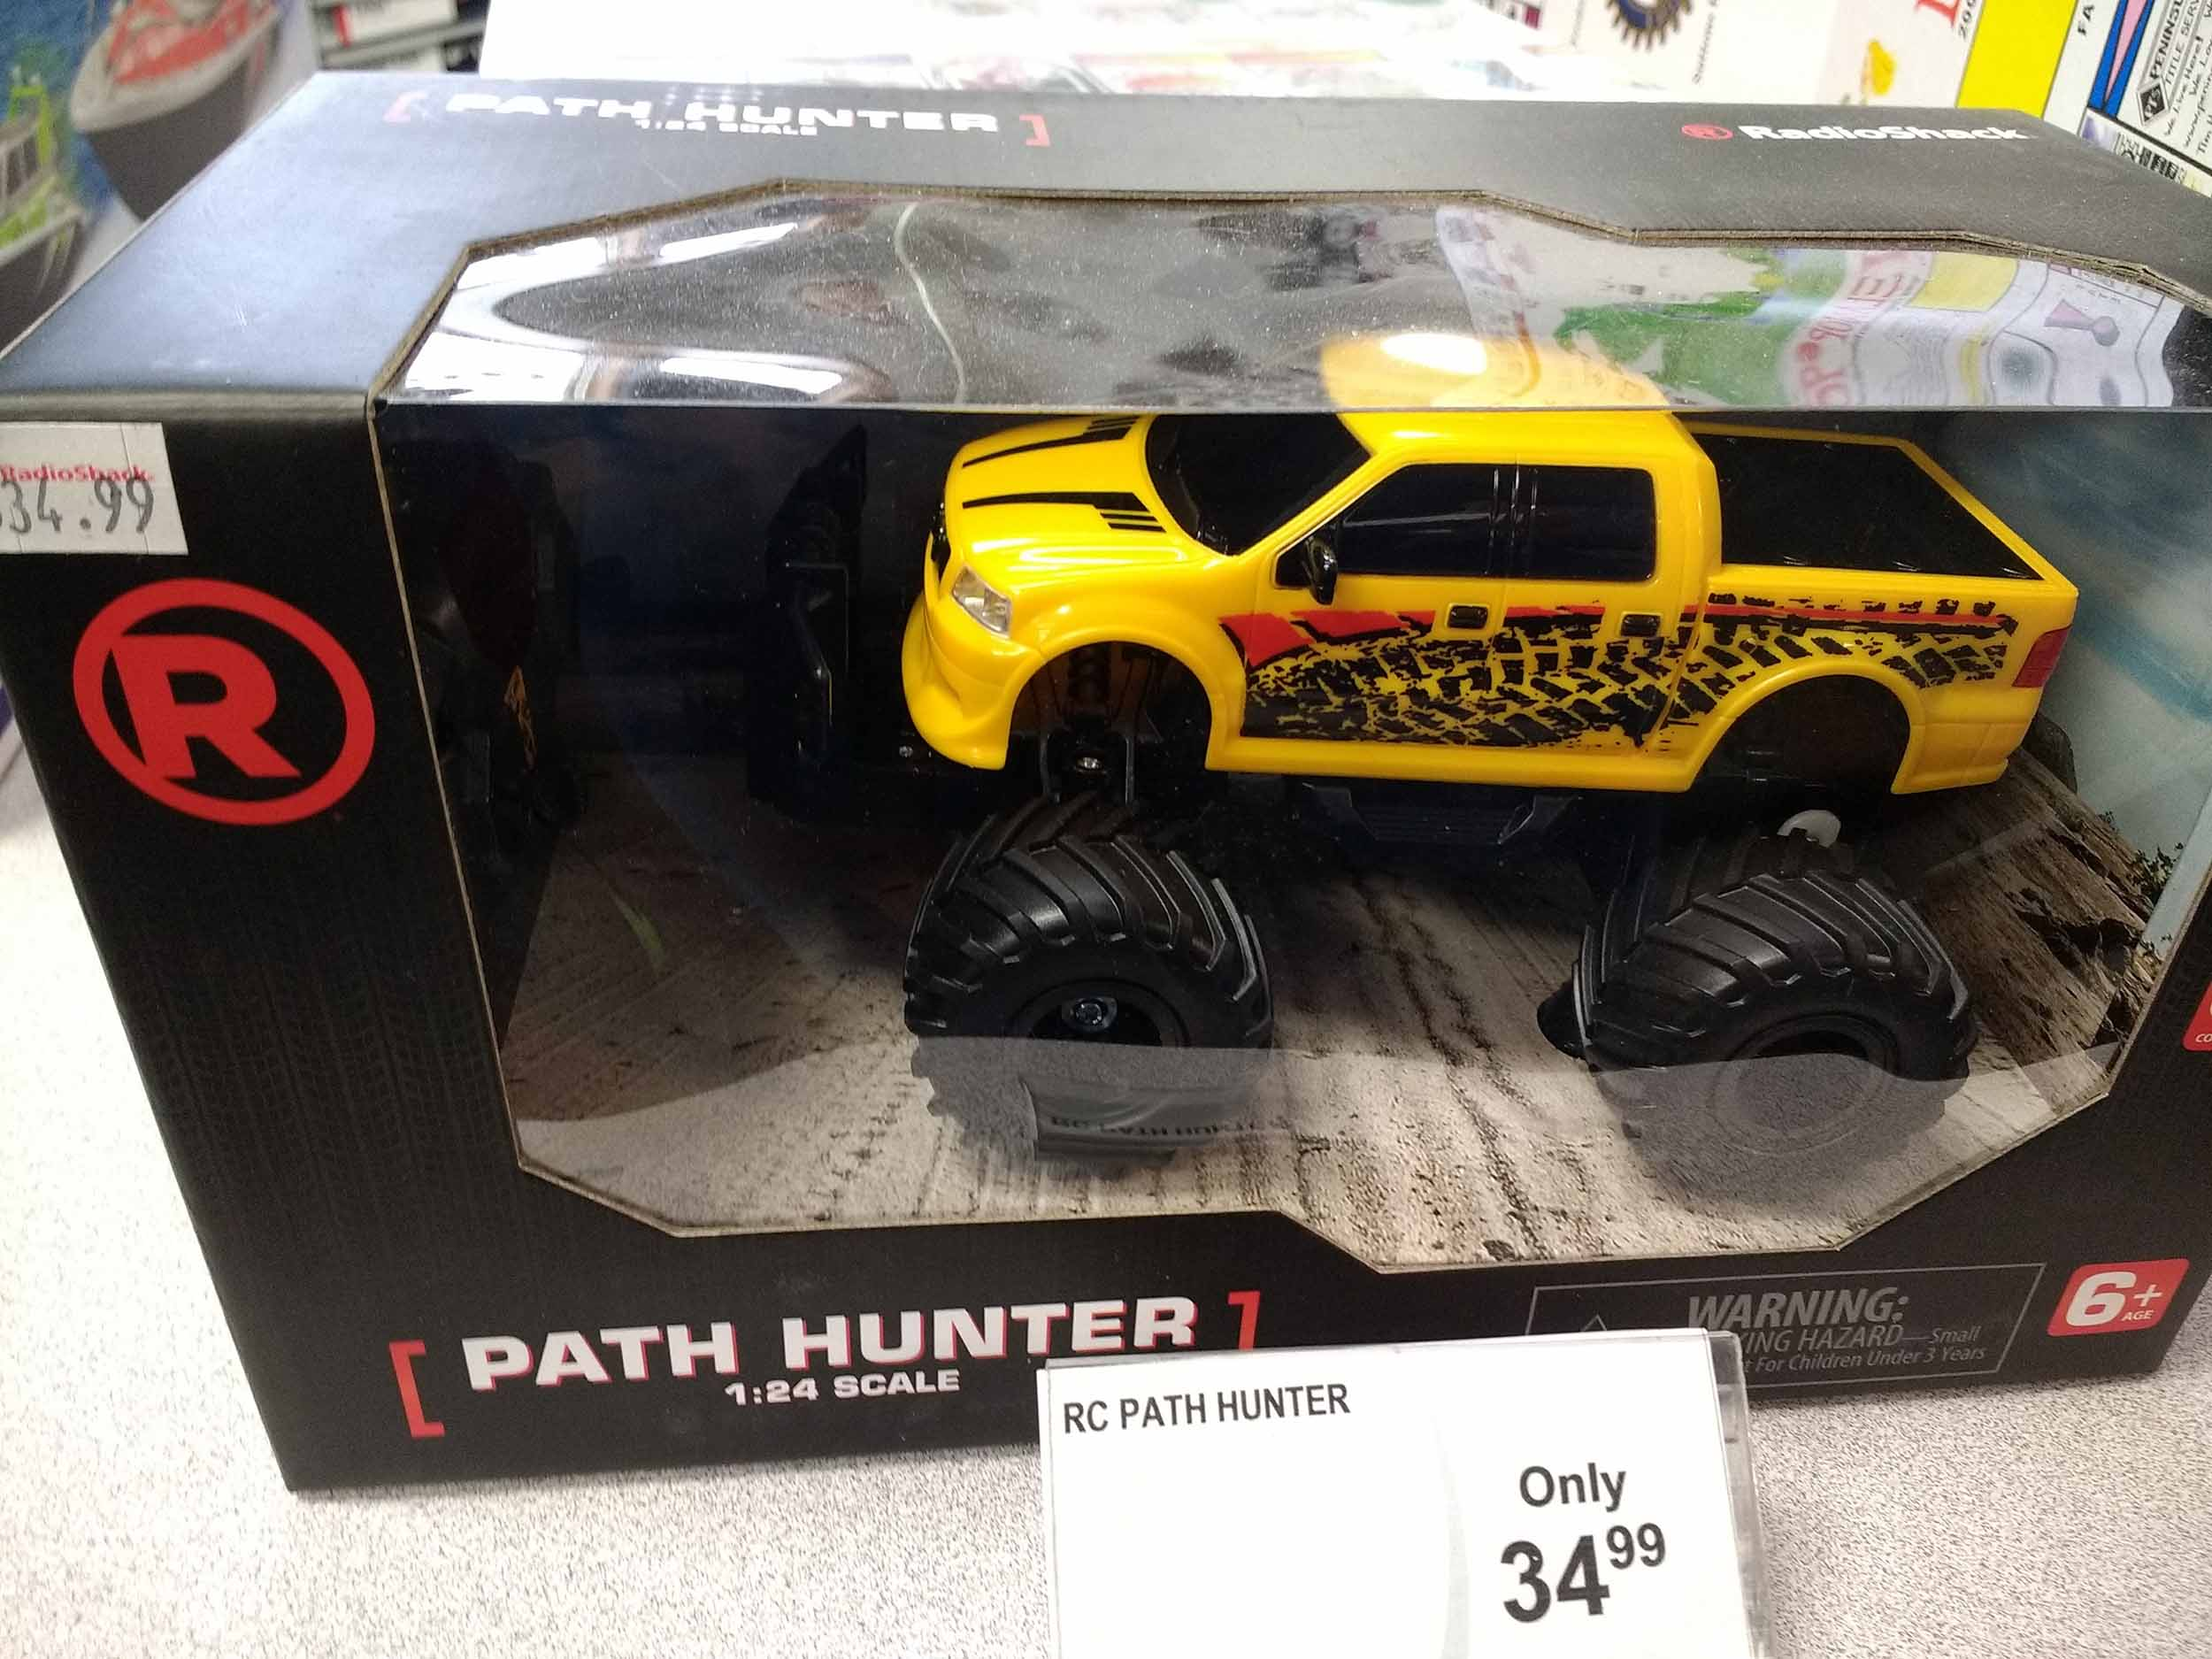 Enjoy the monster truck world with this radio control model.